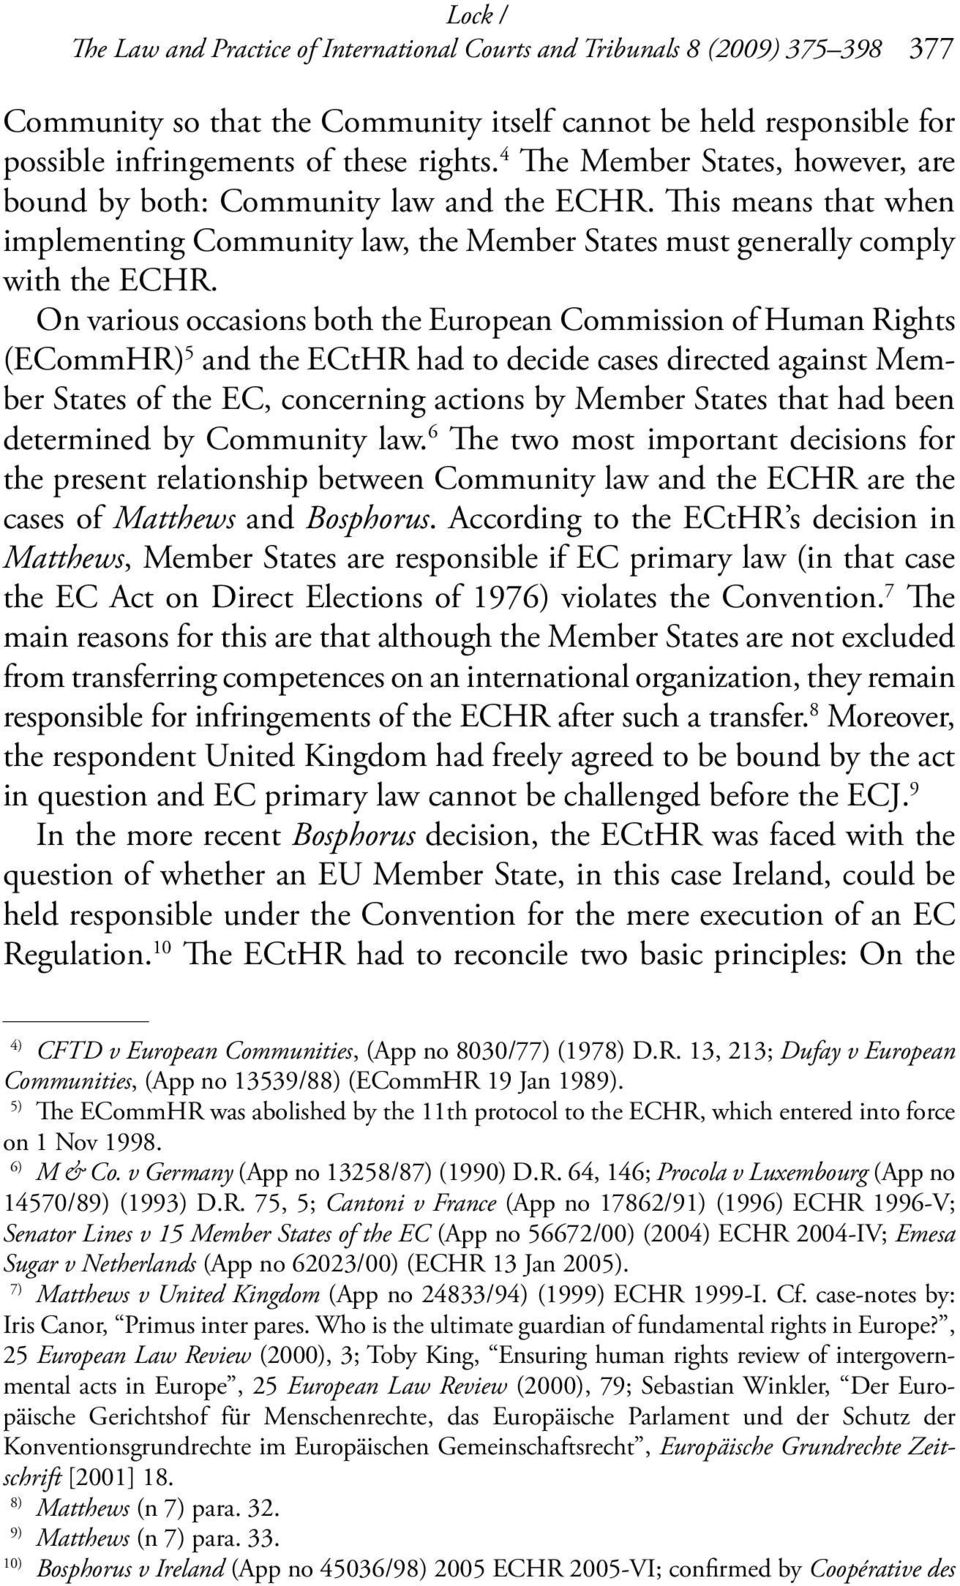 On various occasions both the European Commission of Human Rights (ECommHR) 5 and the ECtHR had to decide cases directed against Member States of the EC, concerning actions by Member States that had